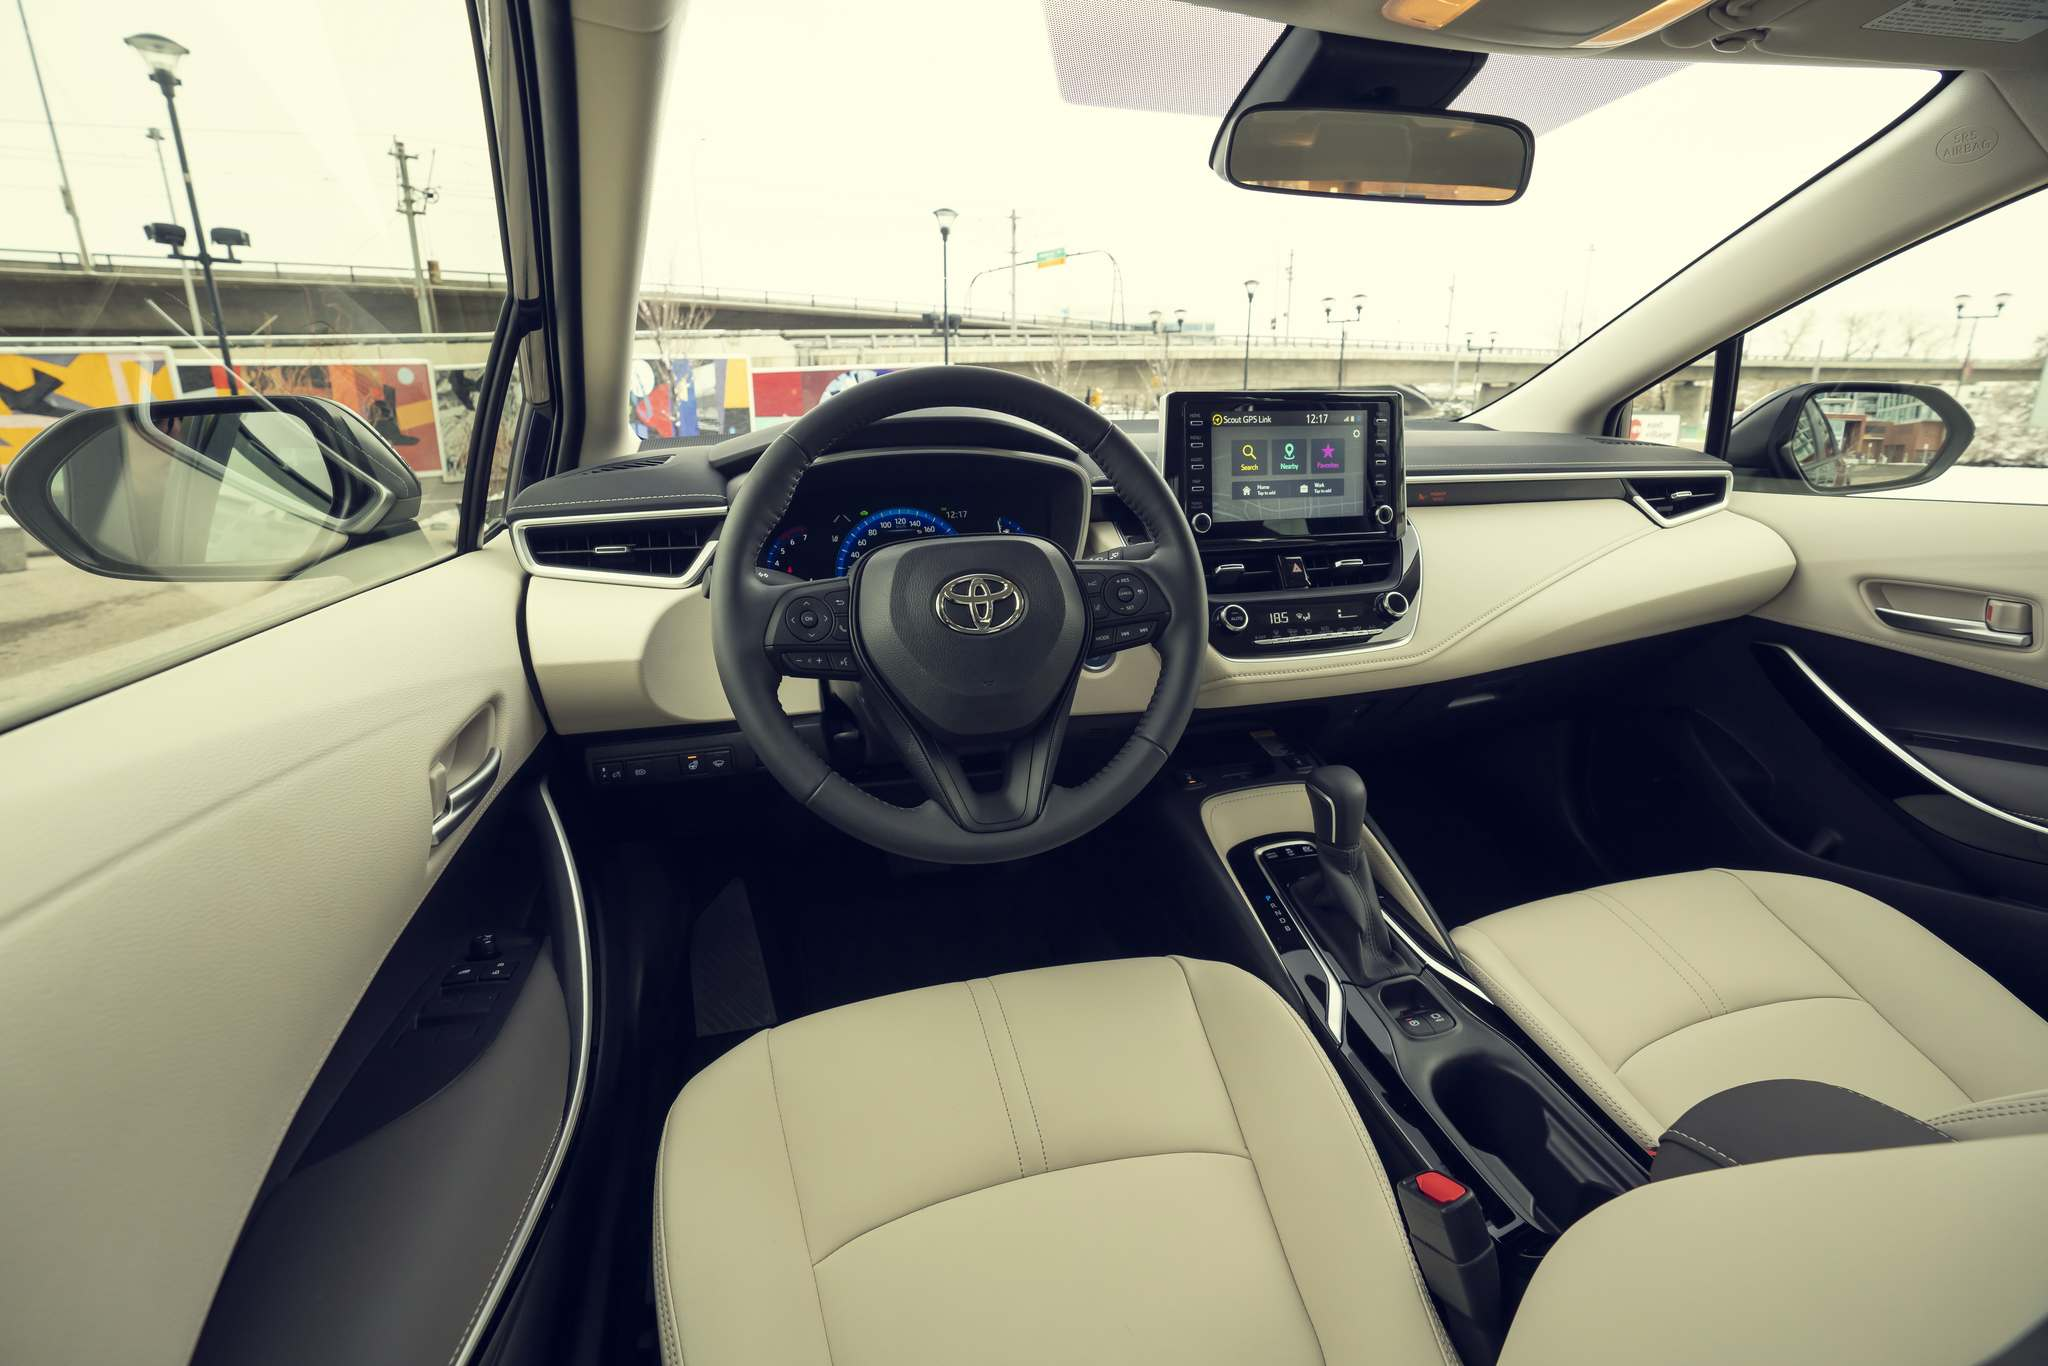 SUPPLIEDThe 2020 Corolla comes with the Toyota Safety Sense 2.0 suite of driver-assist features.